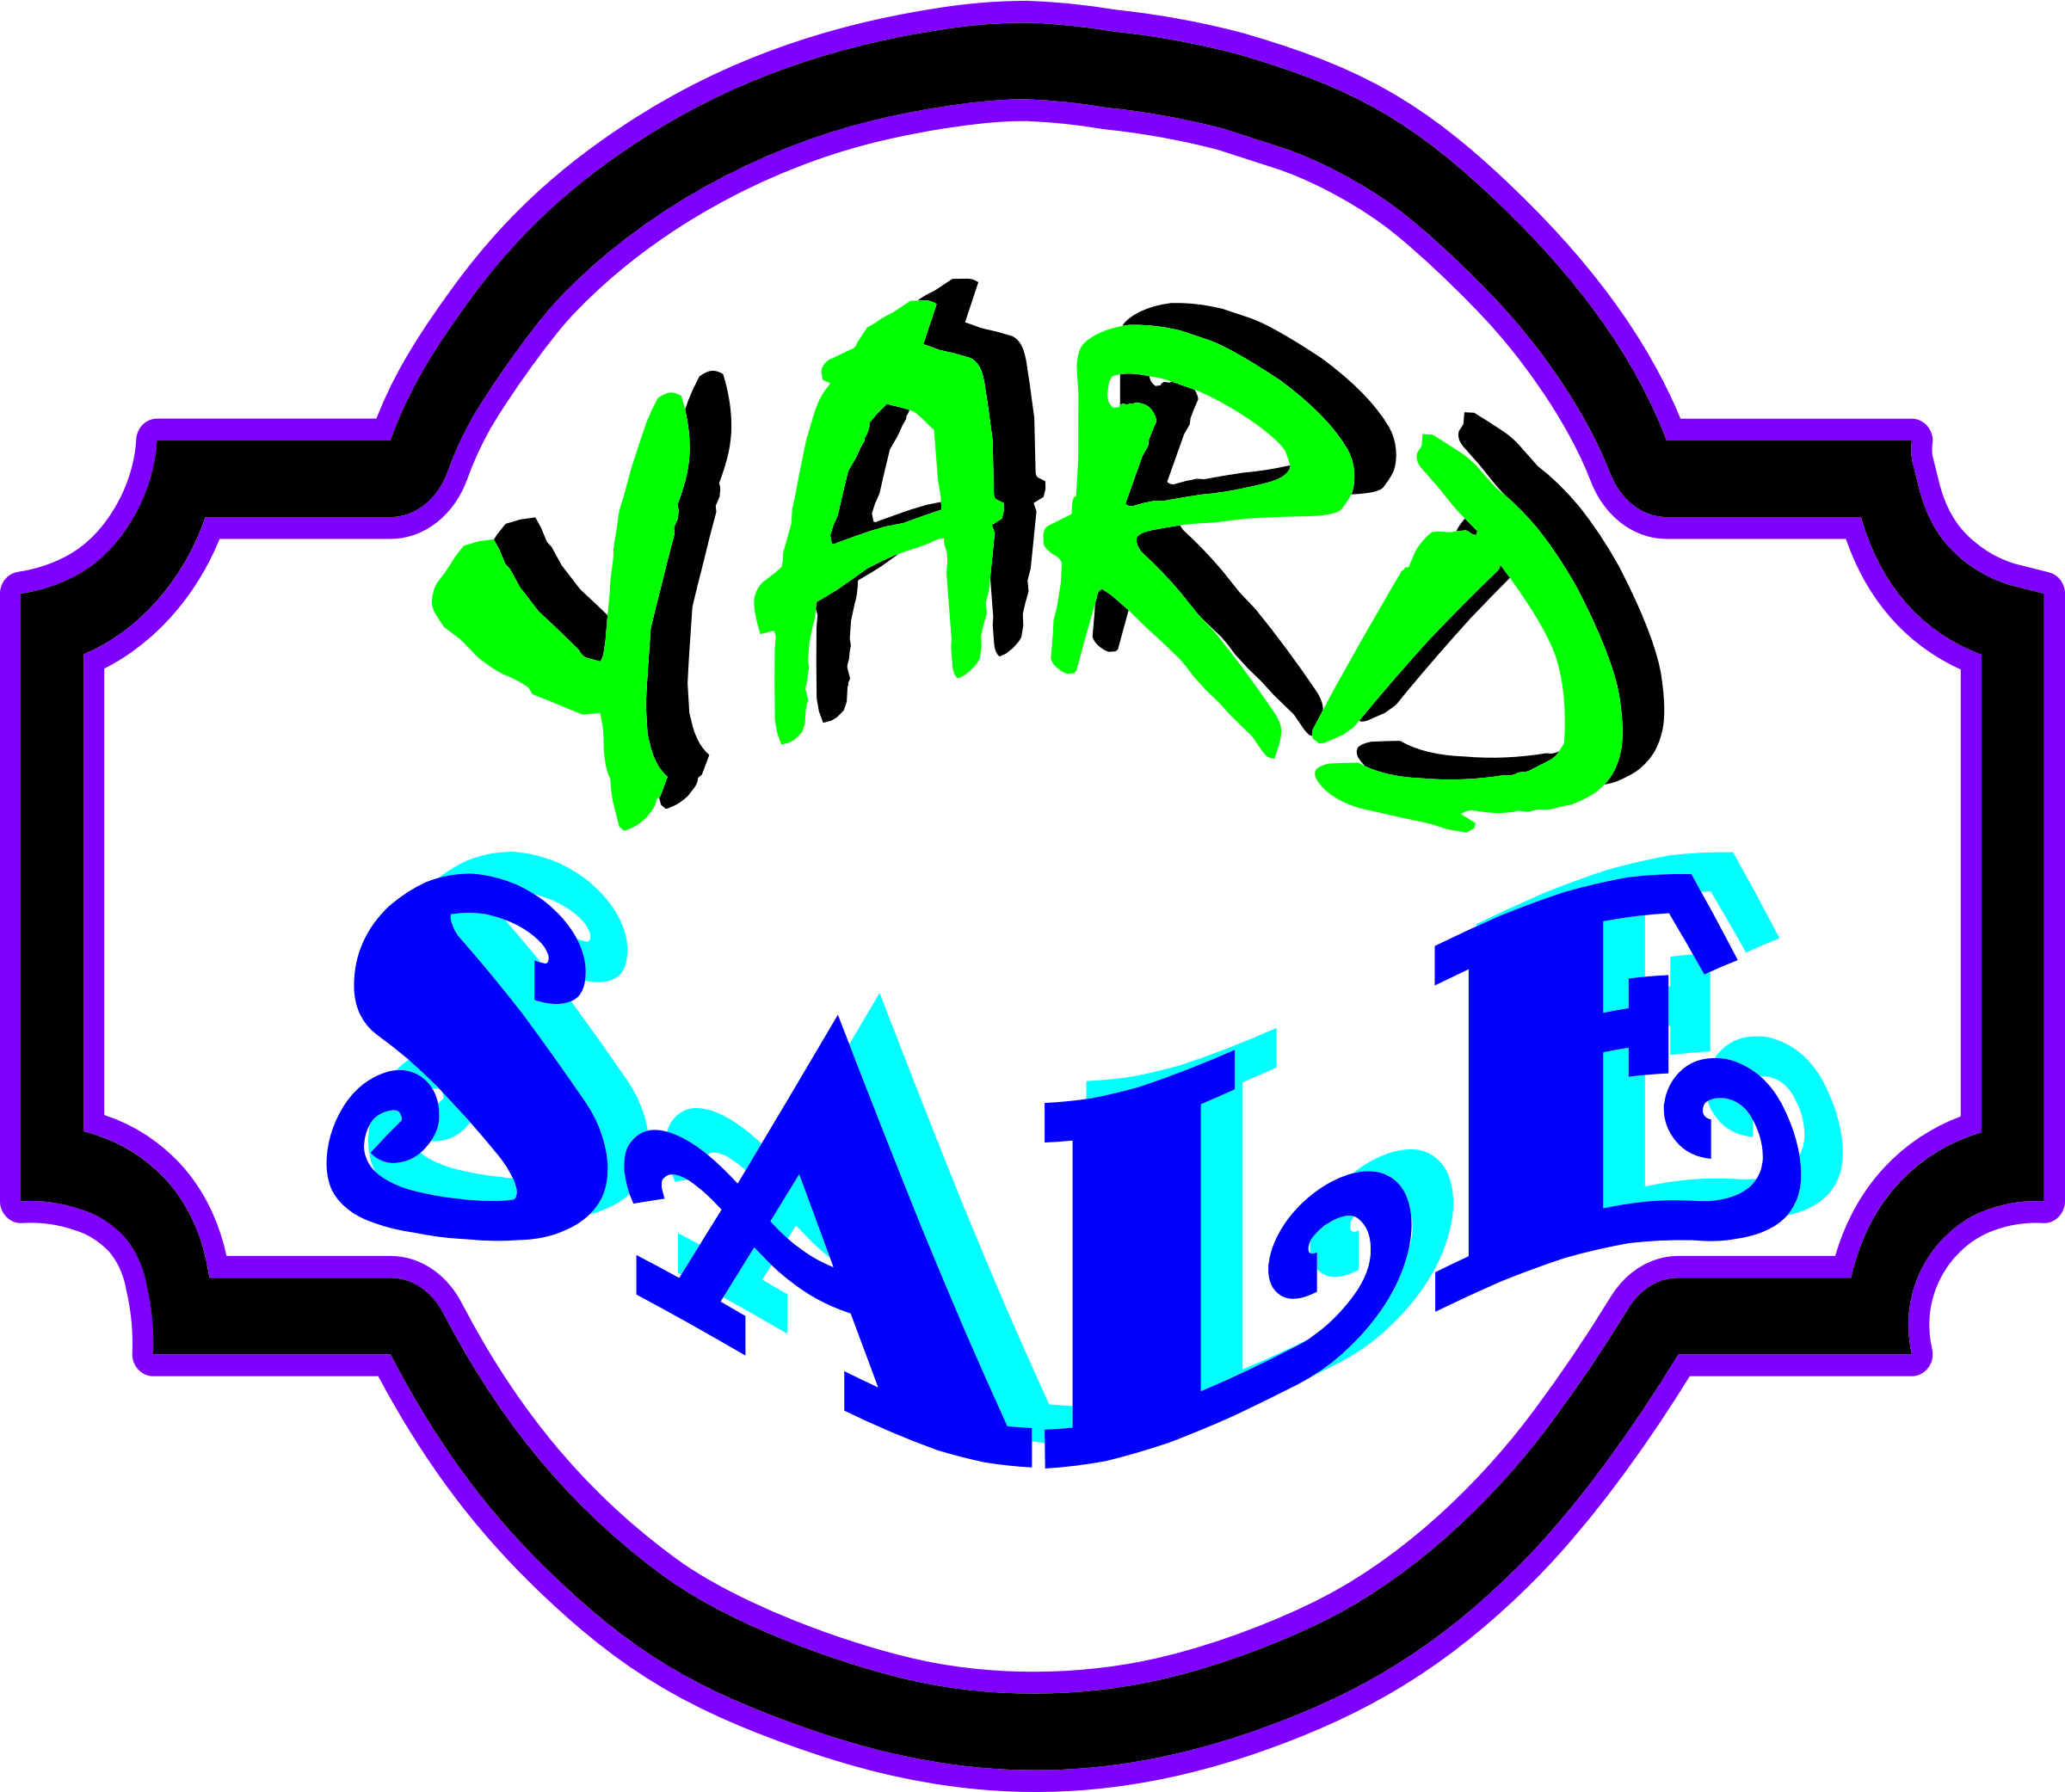 Free PNG Yard Sale Sign - 40684